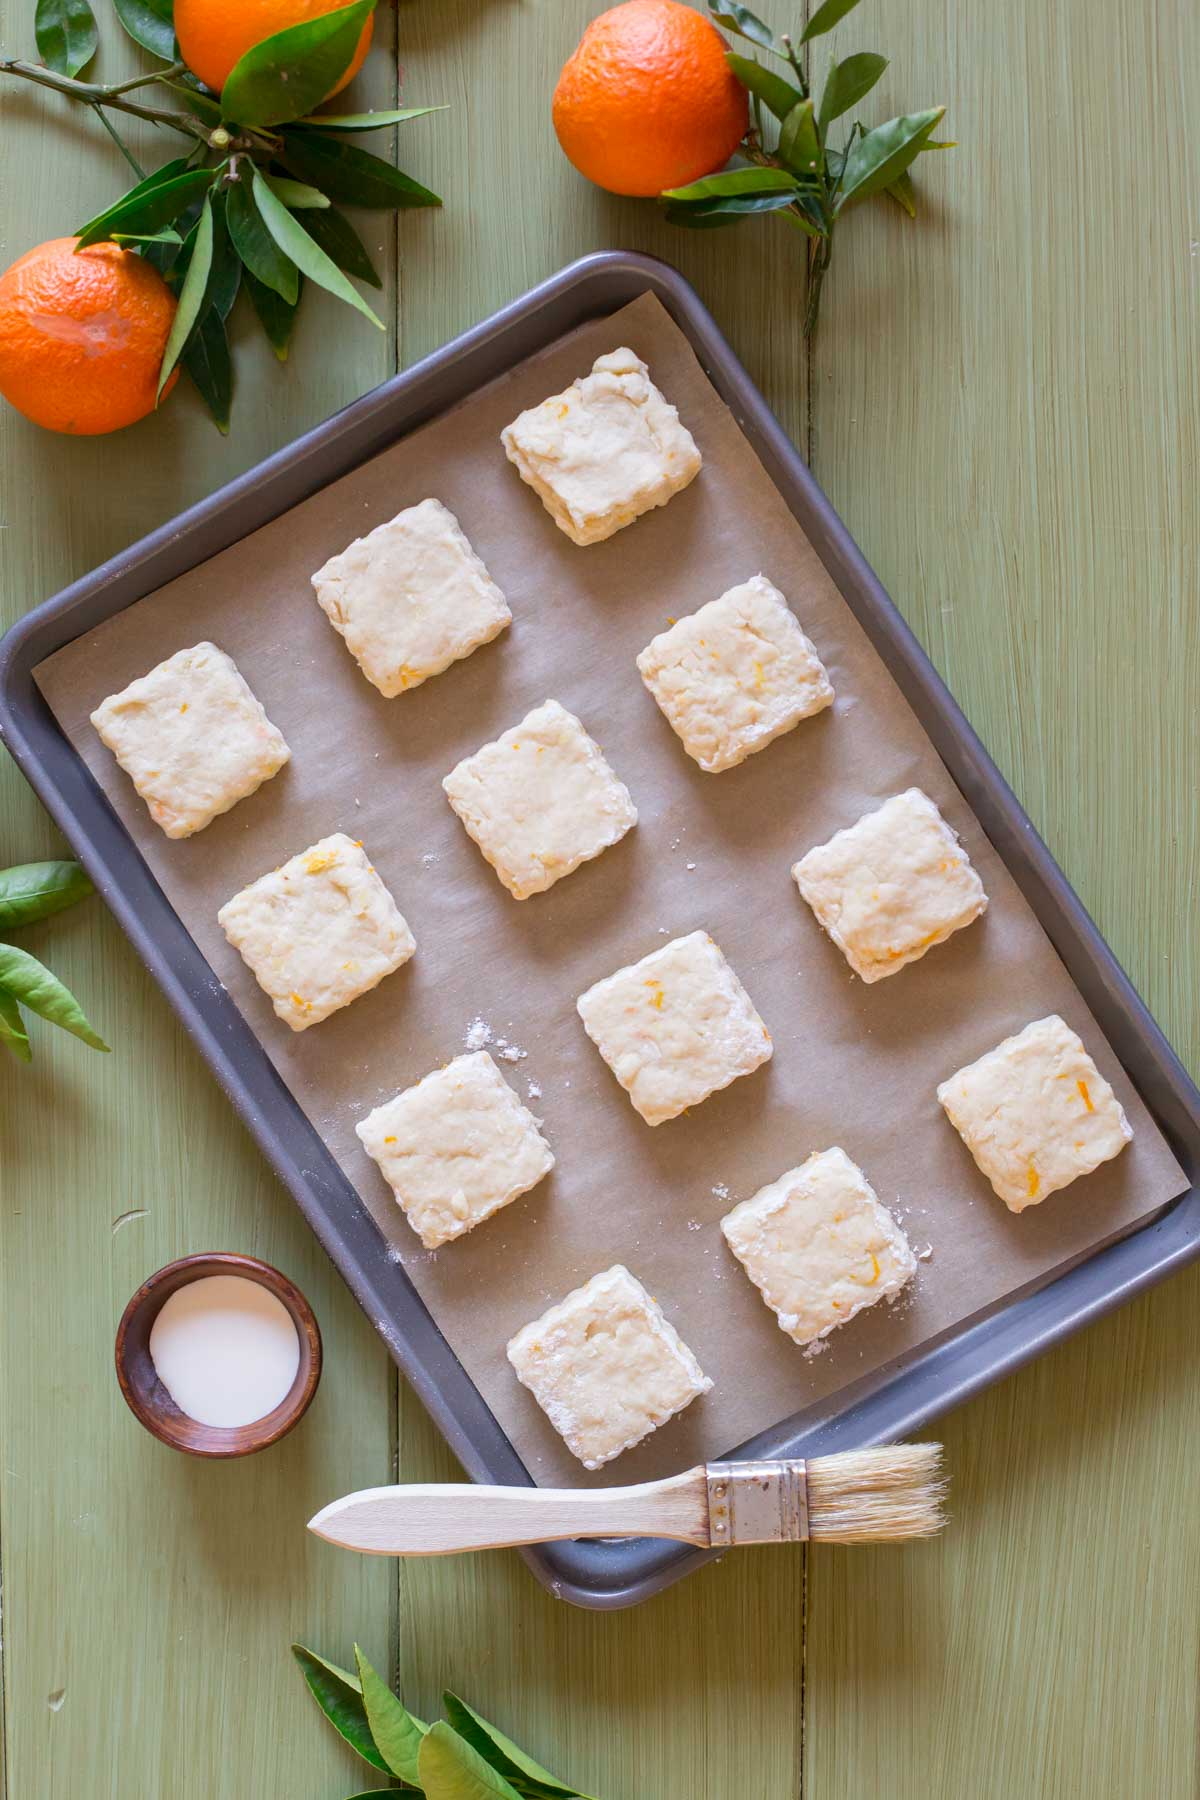 Mini Orange Cream Scones on a parchment paper lined baking sheet, with a small bowl of heavy cream next to it, along with a pastry brush.